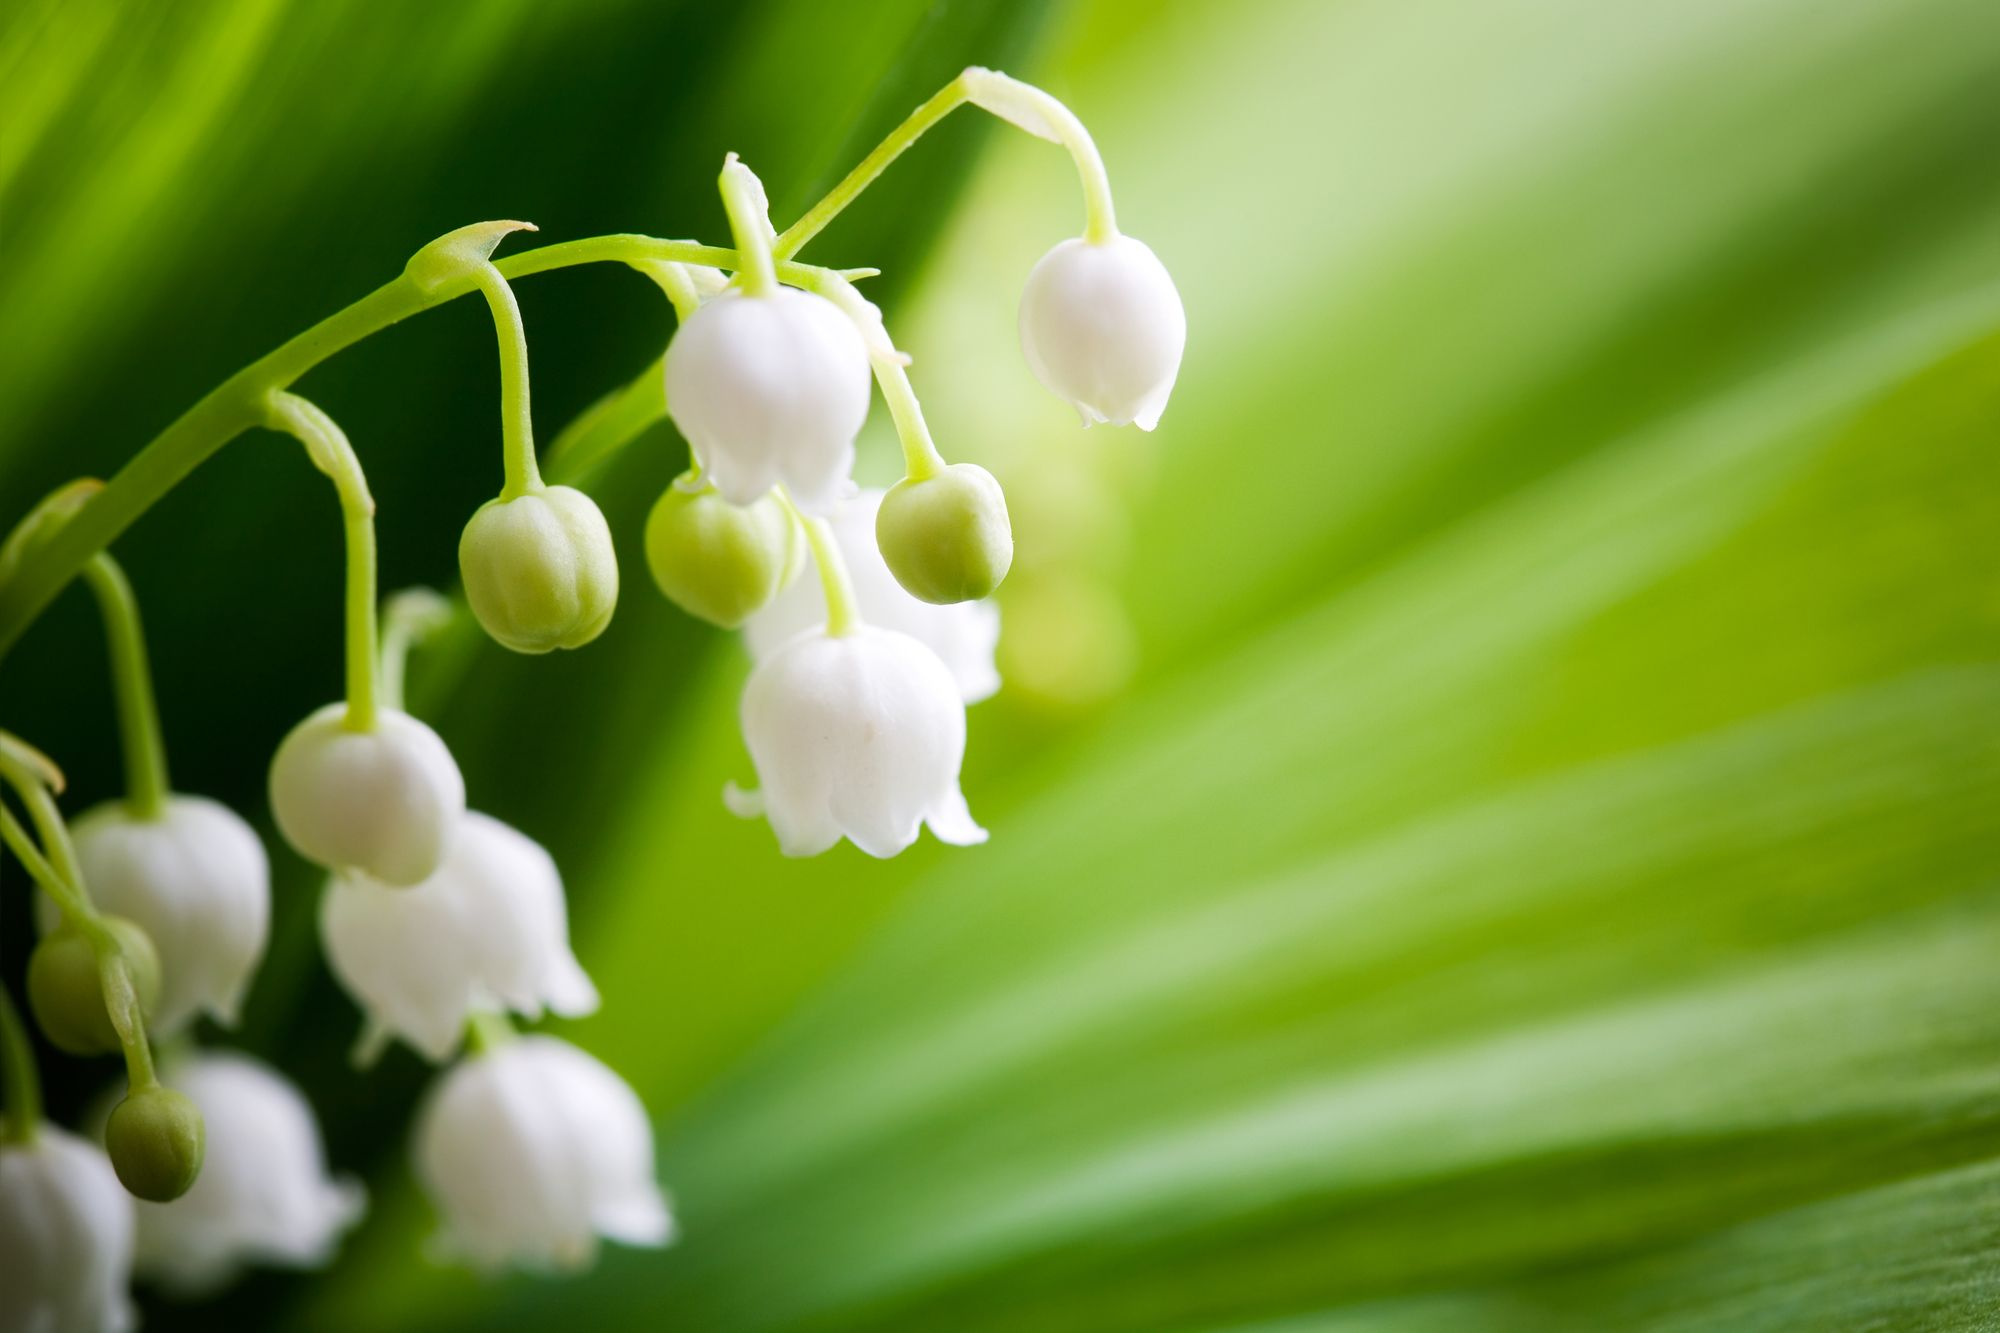 Symbolism of Maiglöckchen, Lily of the Valley, in Germany